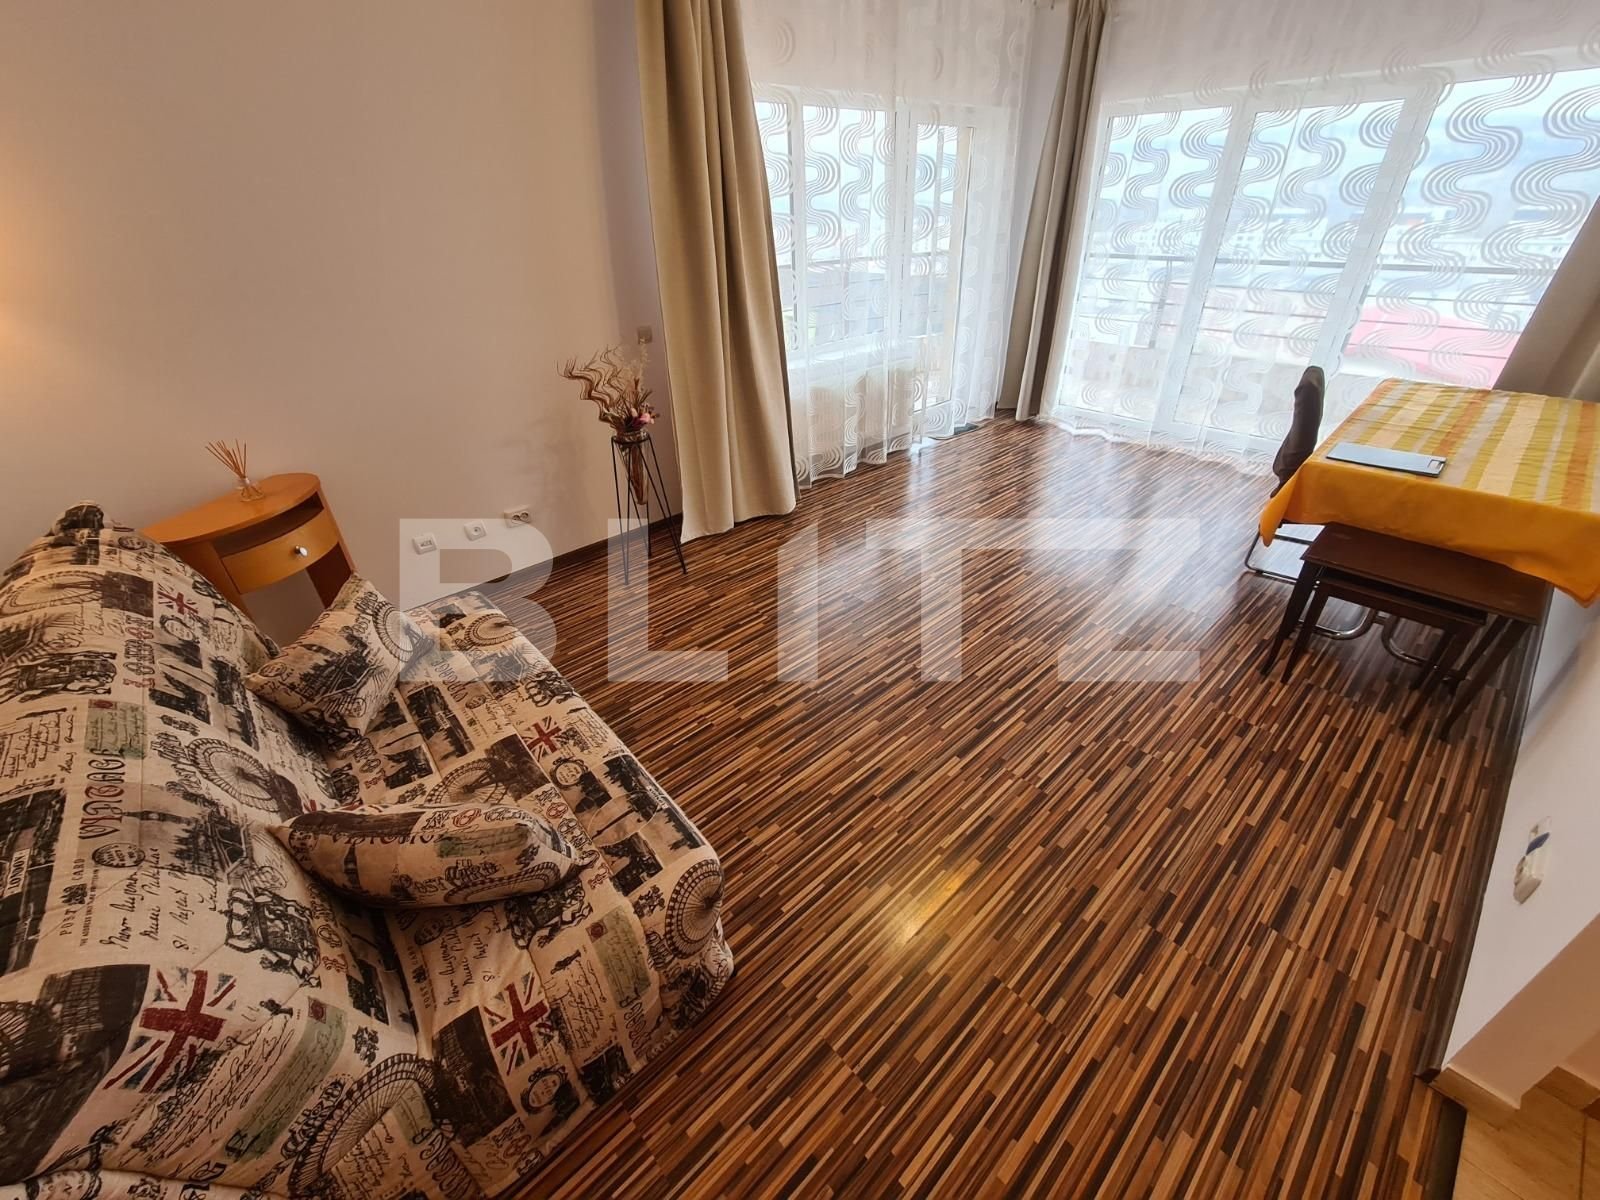 Apartament 1 camera, 44mp, loc parcare, panorama! Zona Vivo!